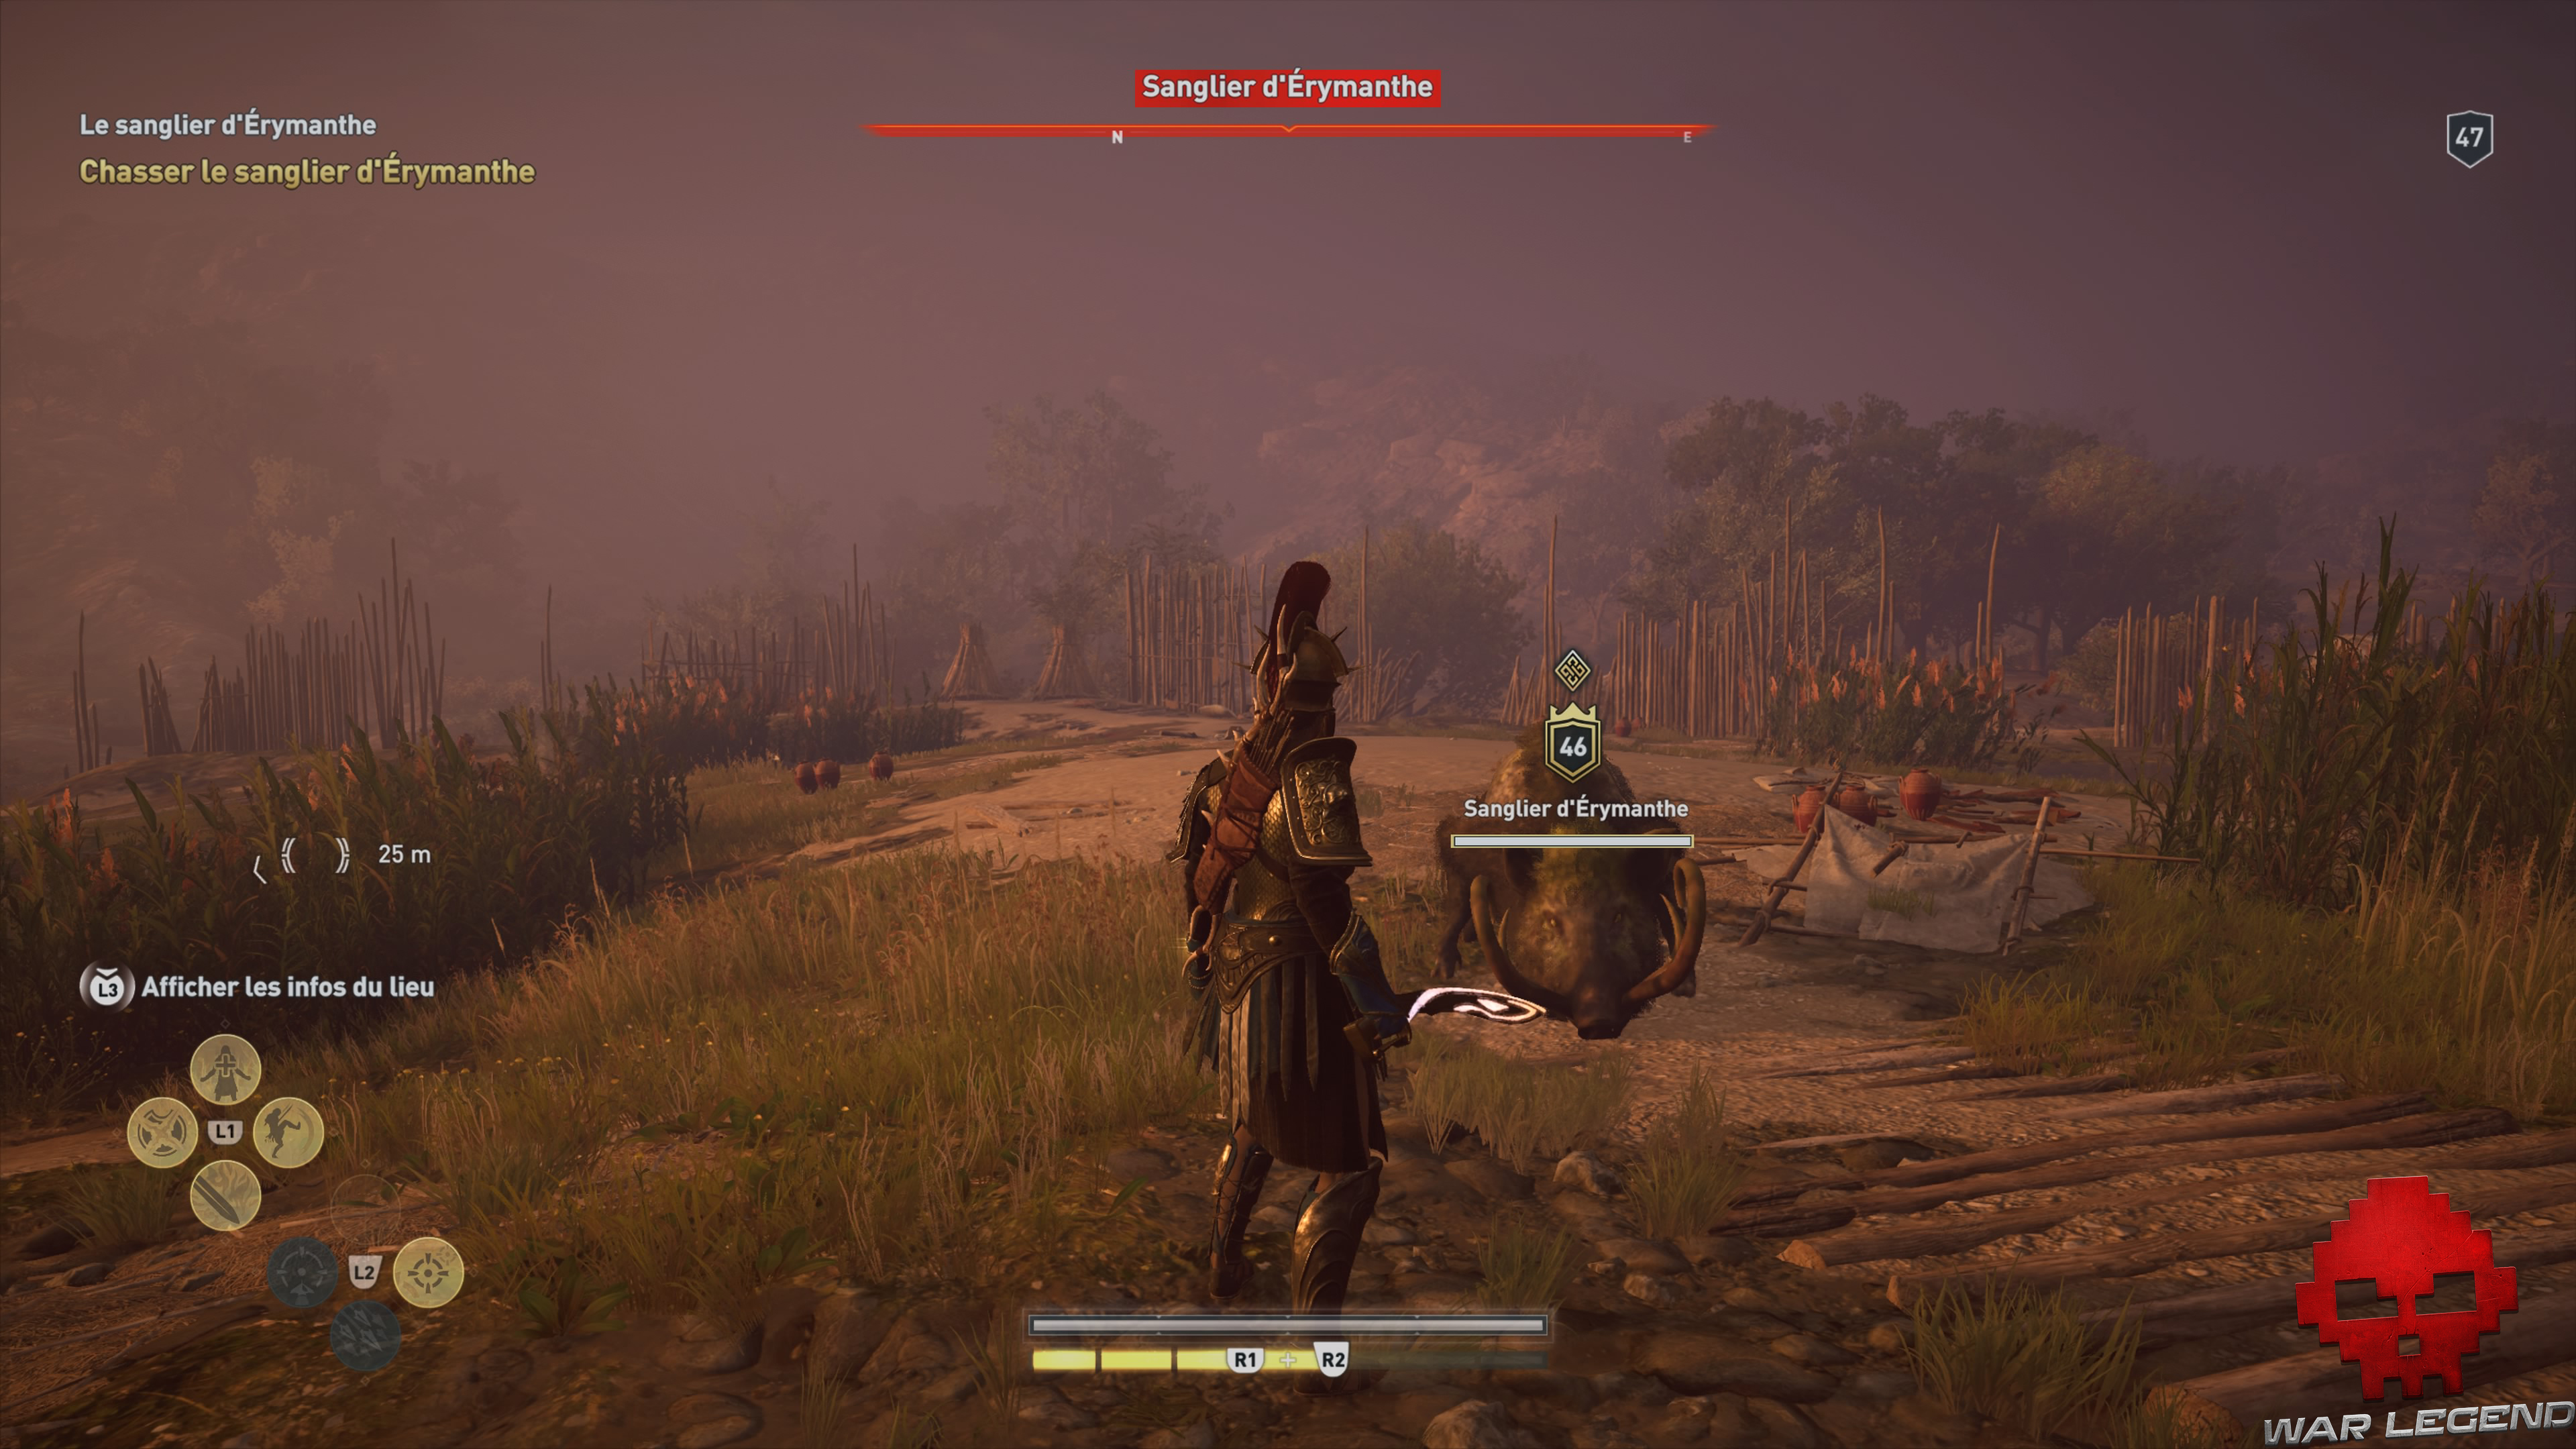 Guide bêtes mythiques assassin's creed odyssey sanglier d'erymanthe emplacement